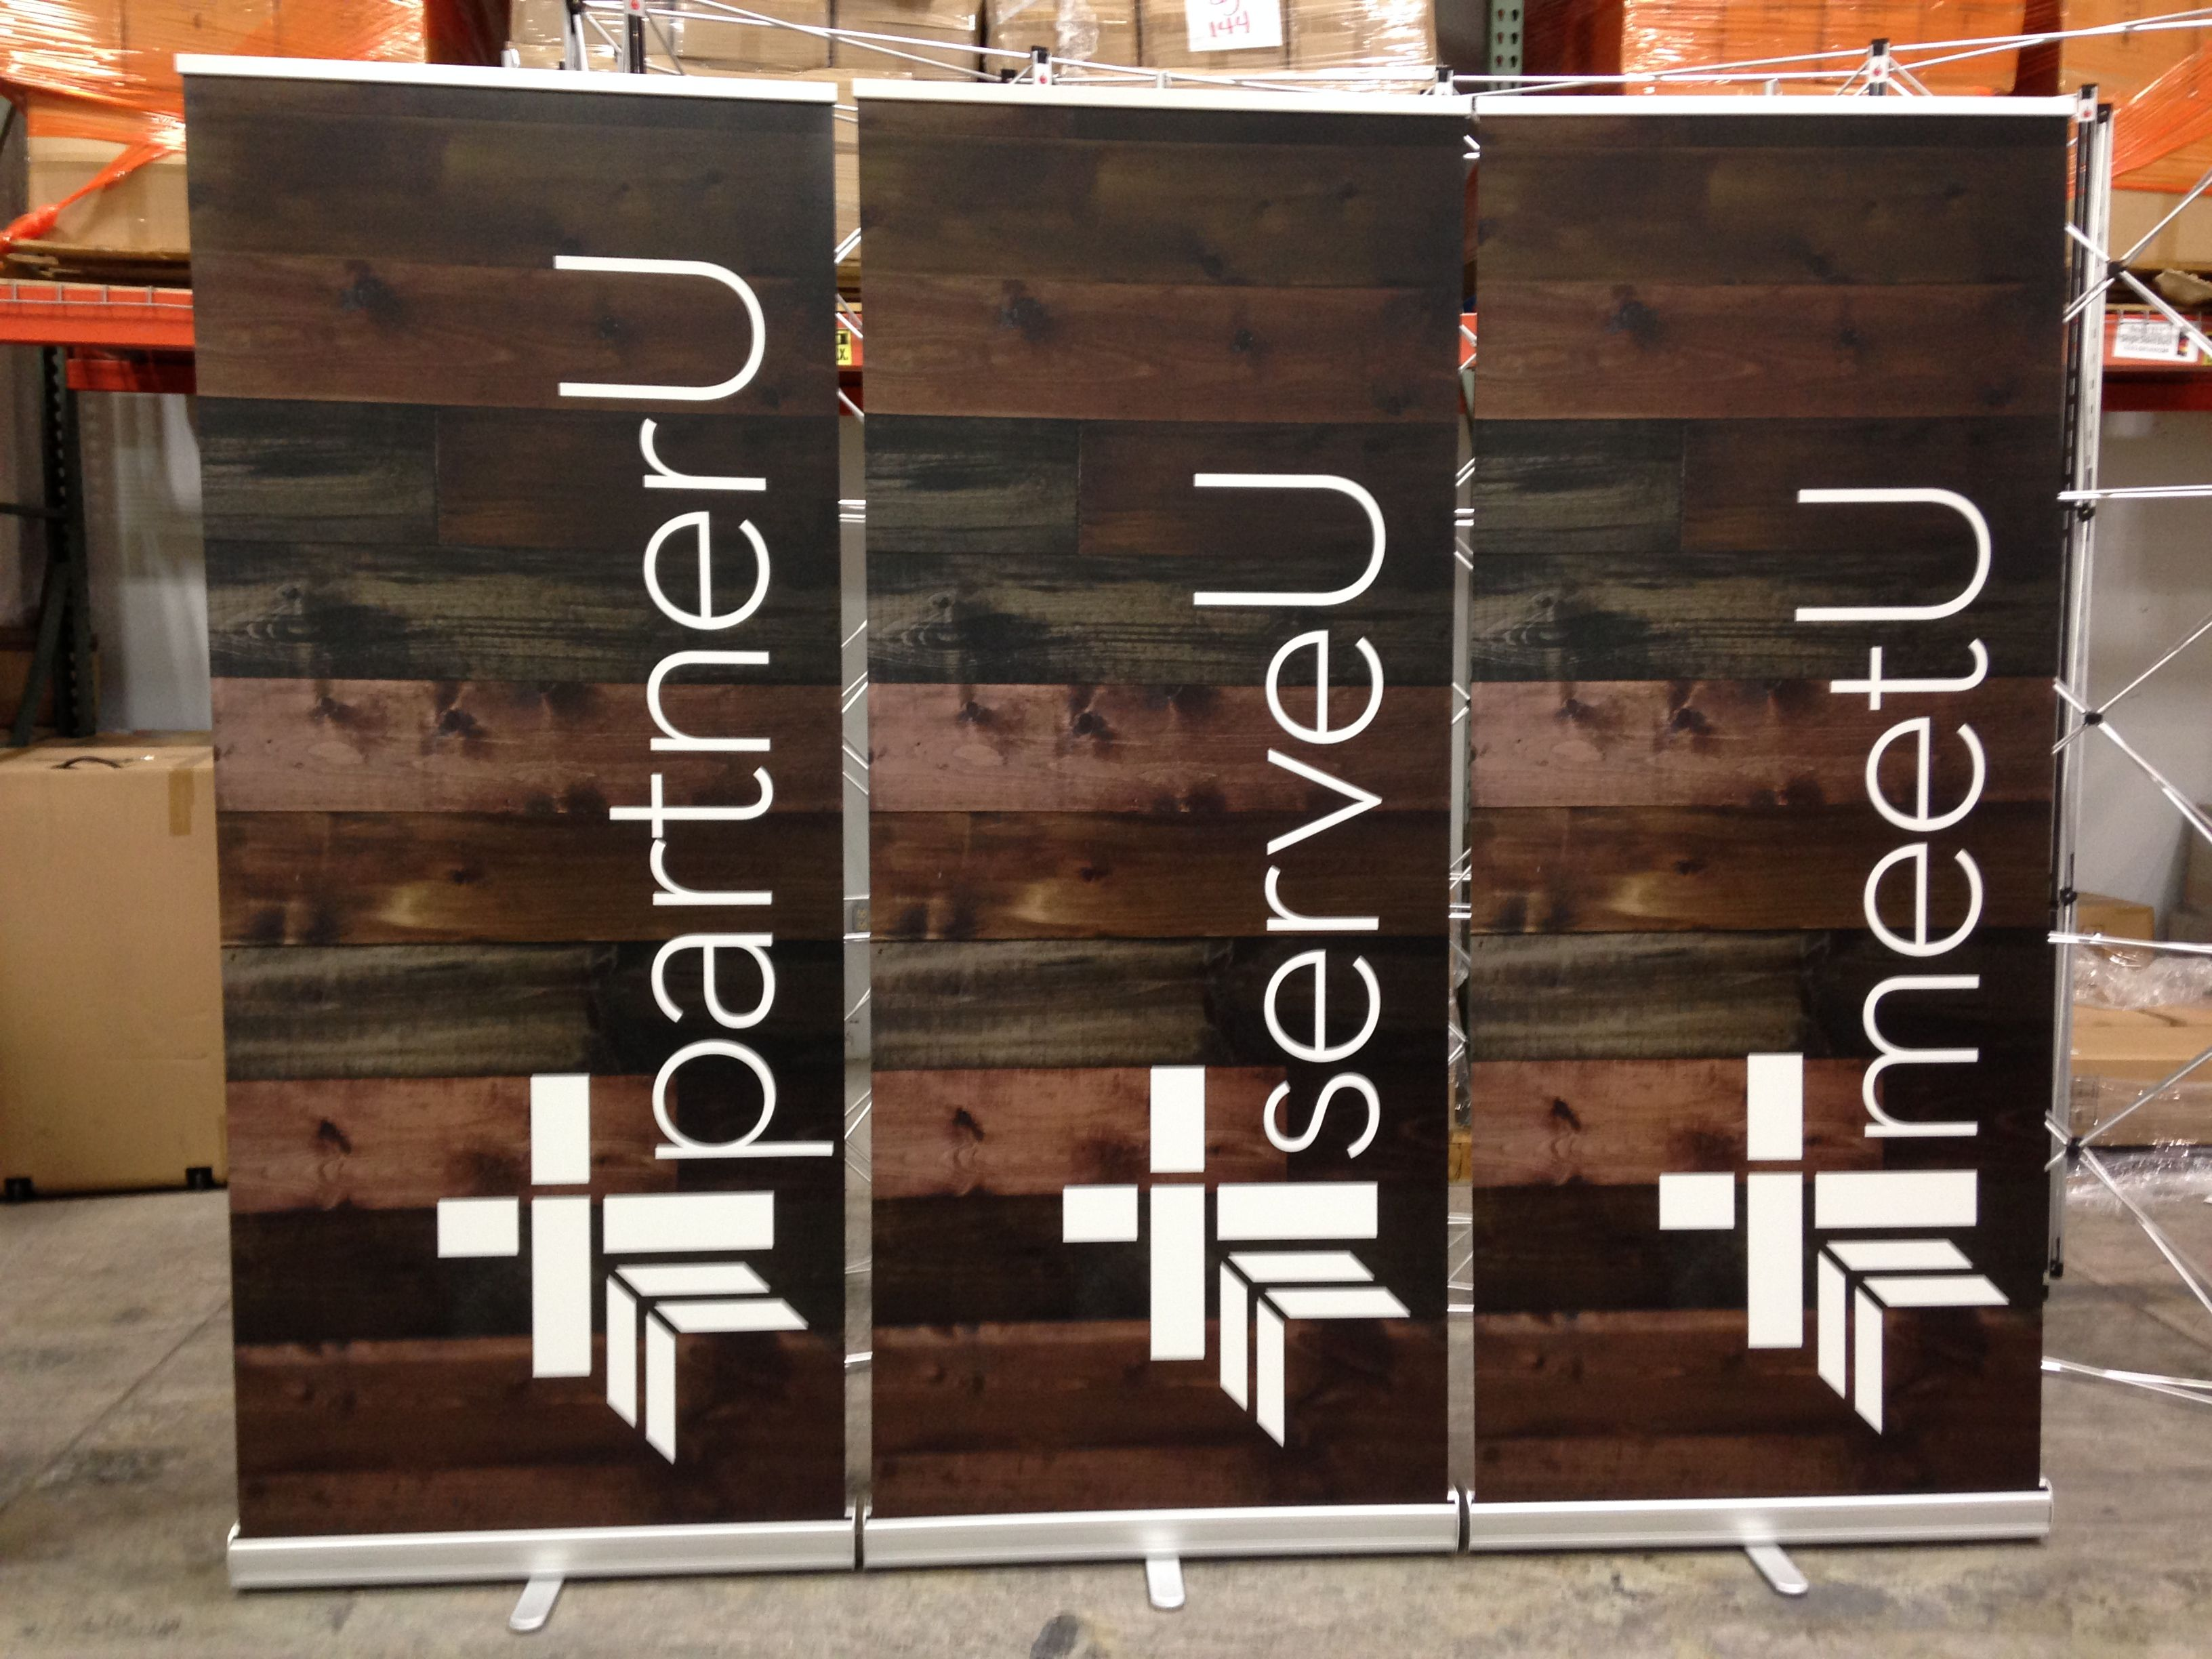 Christian education and hospitality pull-up signs for Lee's Summit Community Church (Lee's Summit, MO). Perfect example of everything done right.